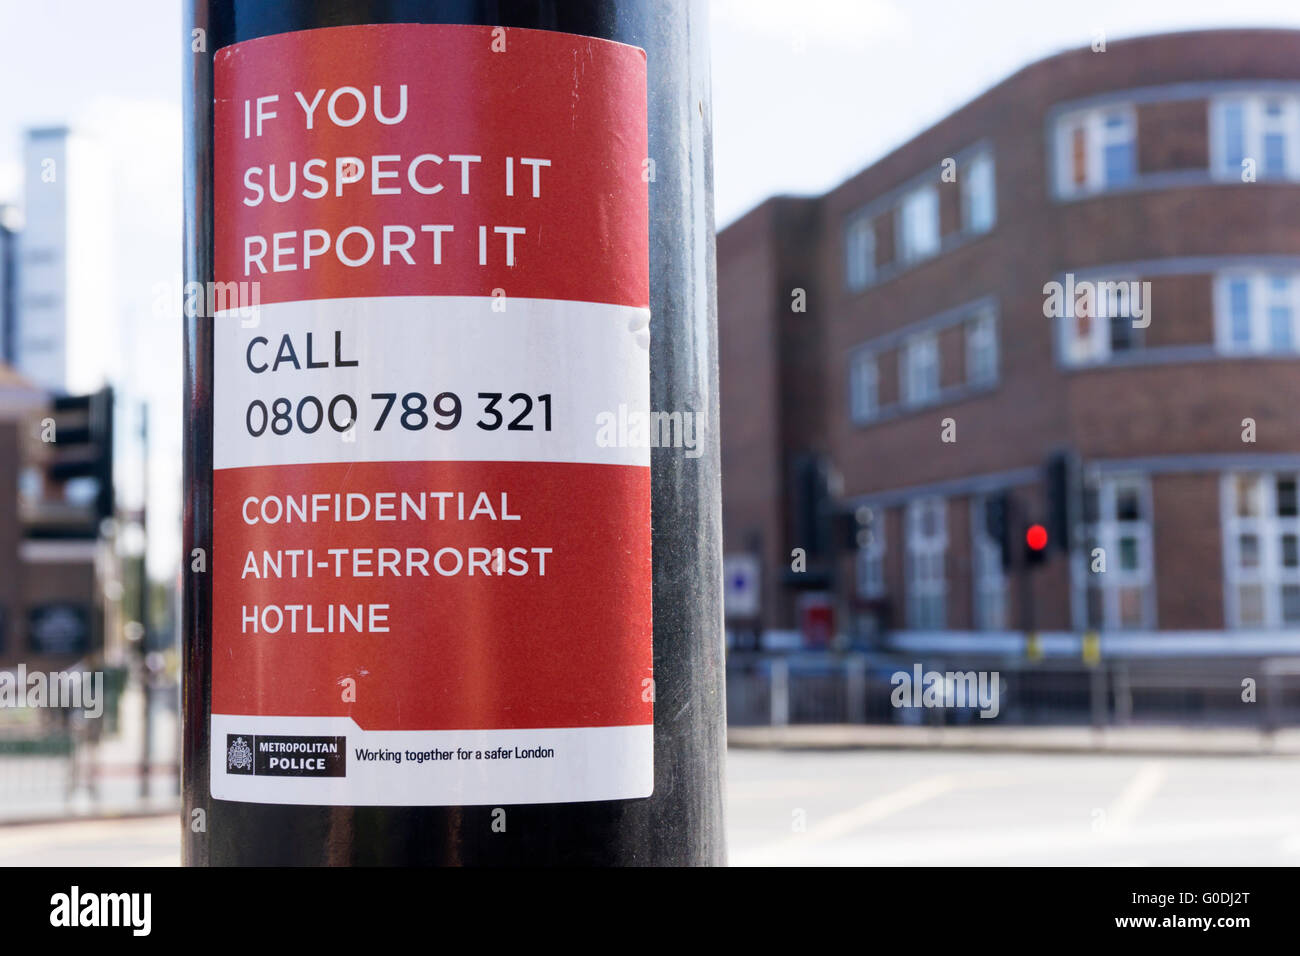 A sign publicising the confidential anti-terrorist hotline. - Stock Image